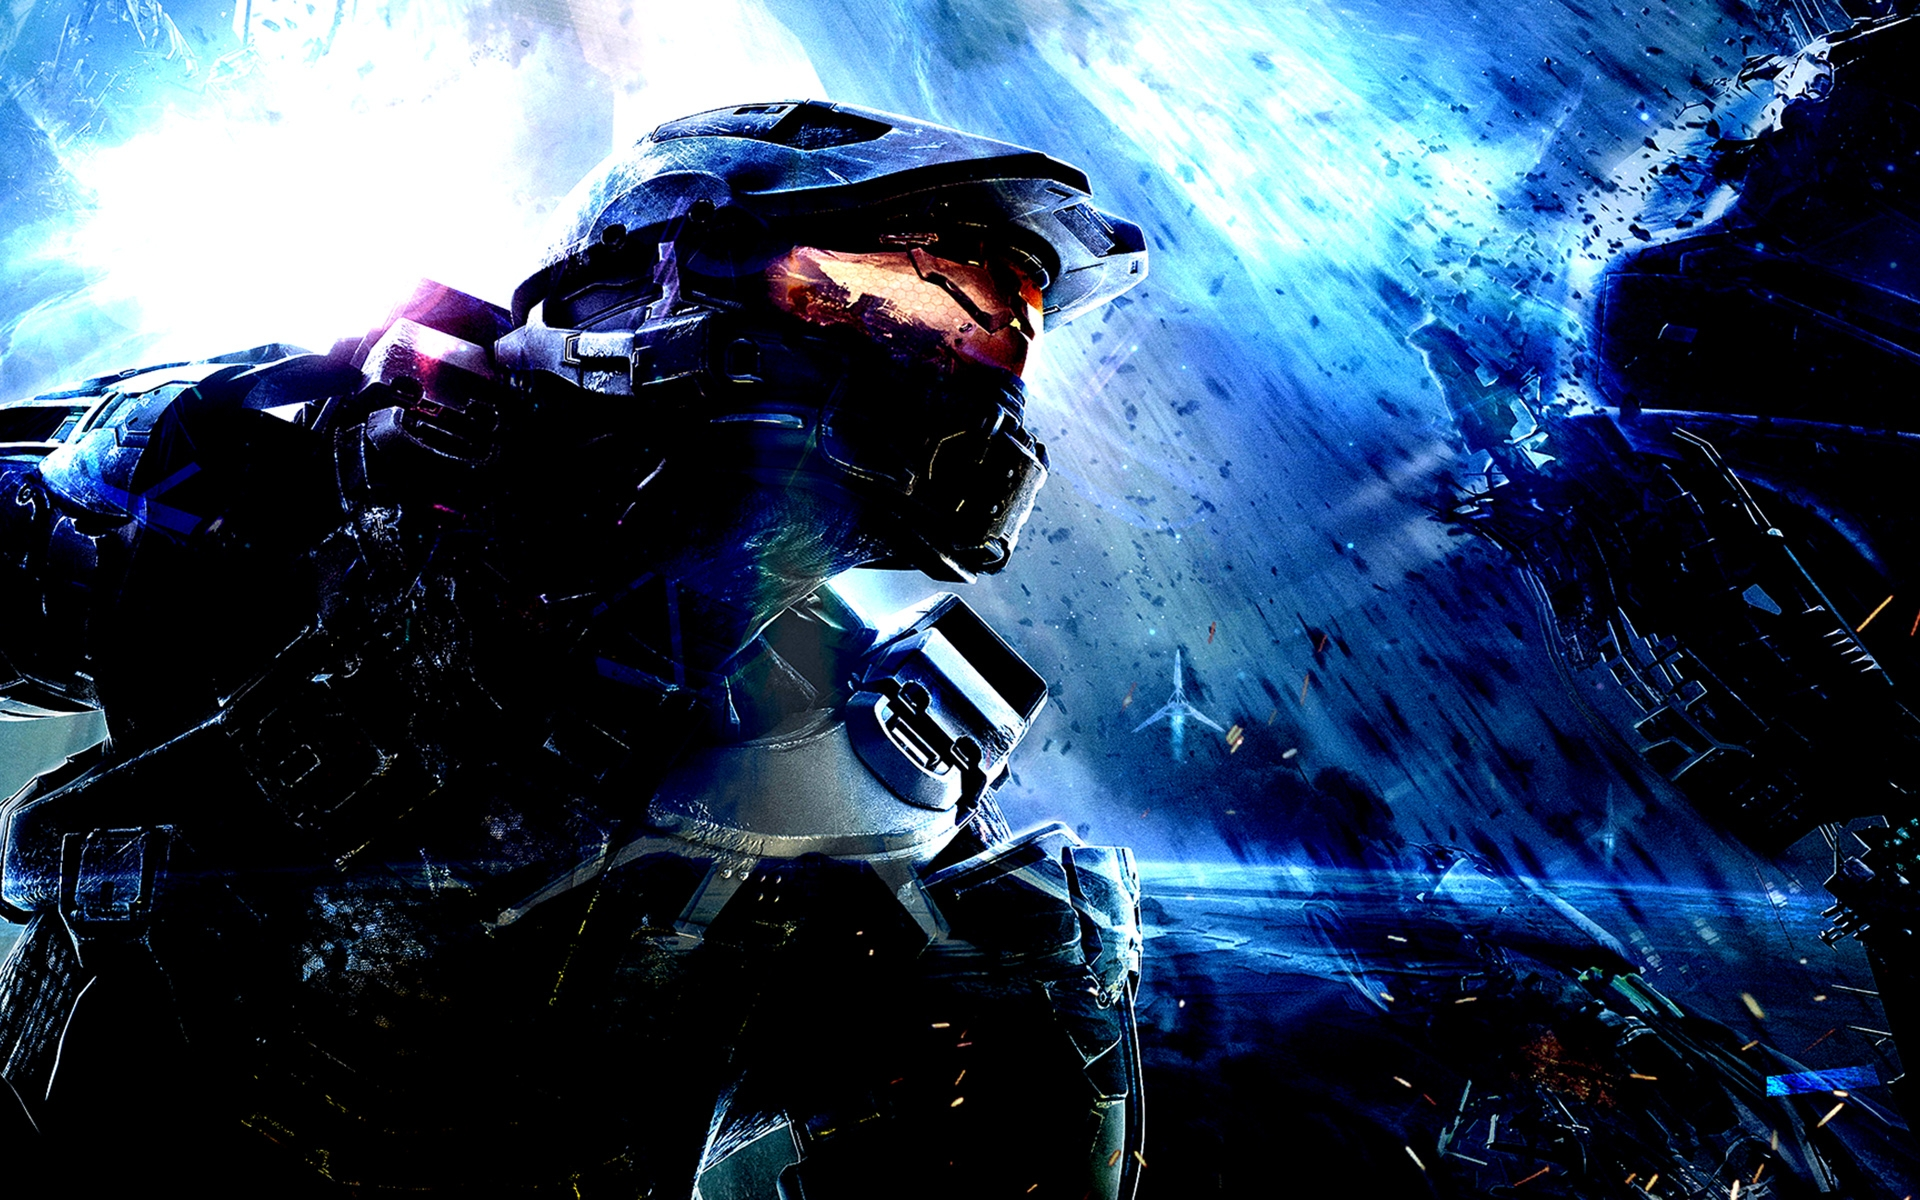 Halo 5 guardians hd wallpaper wallpapersafari - V wallpaper hd ...